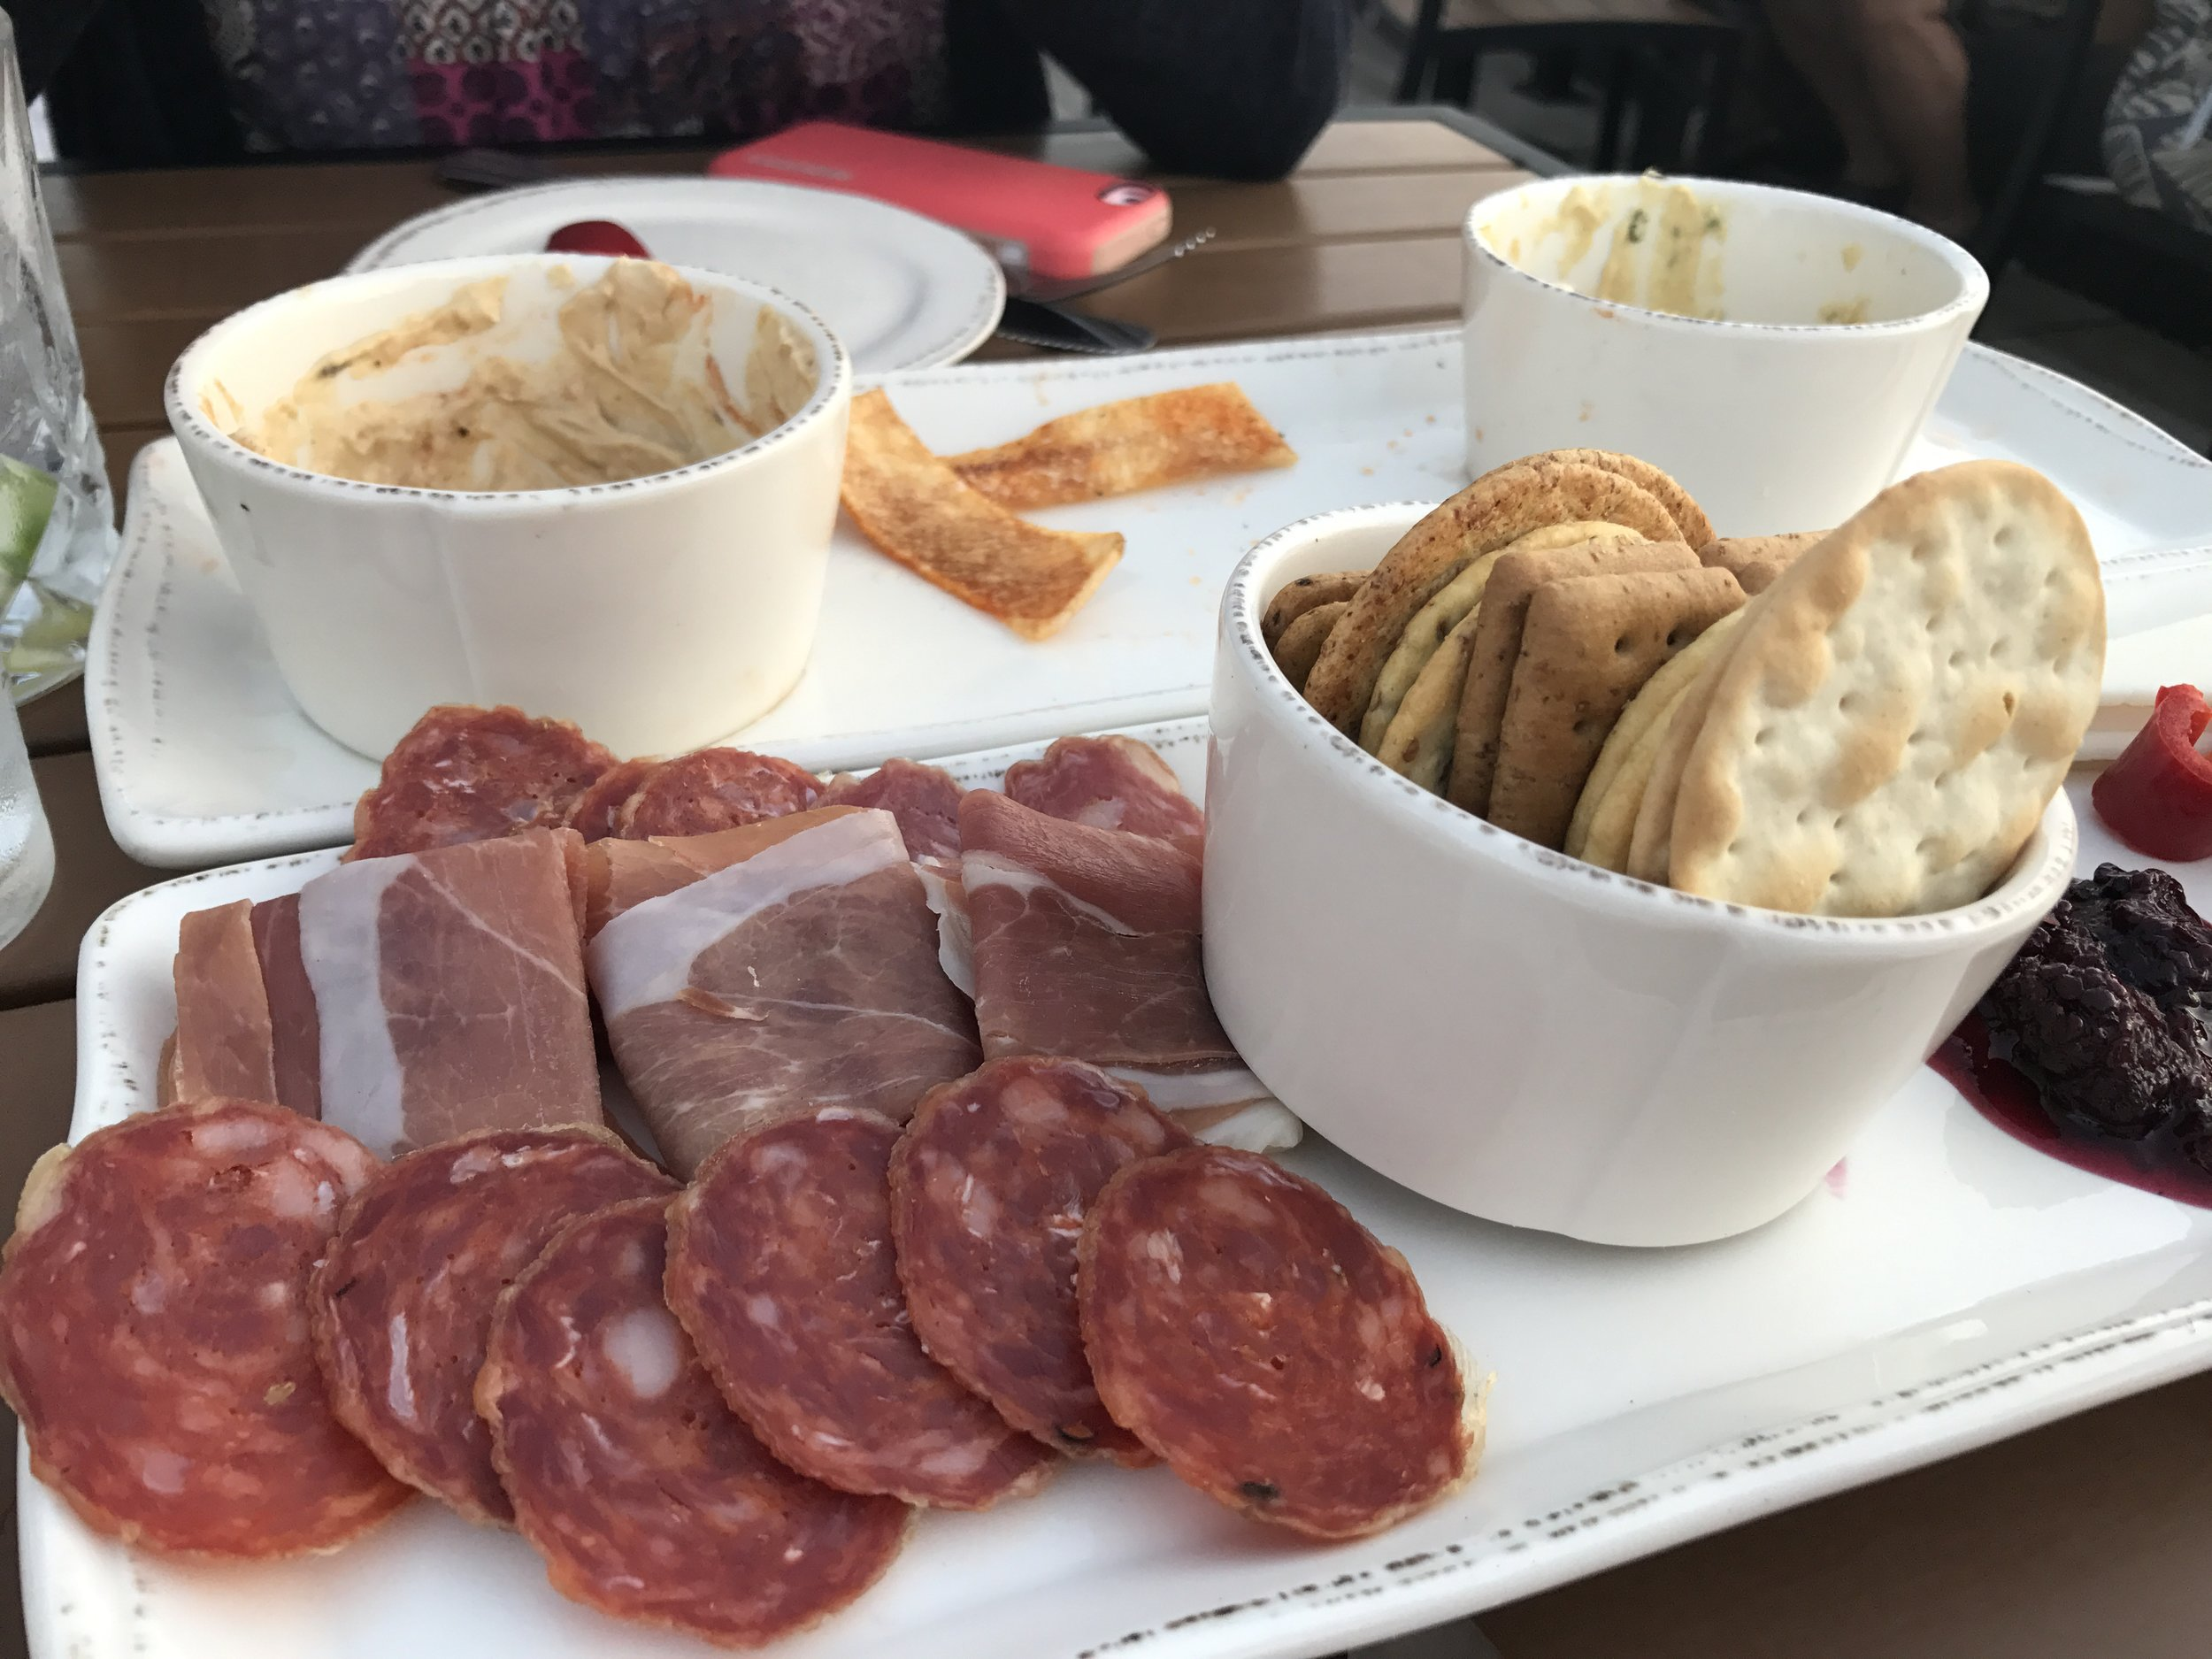 Can't decide on dinner? Oooh! Nibbles!